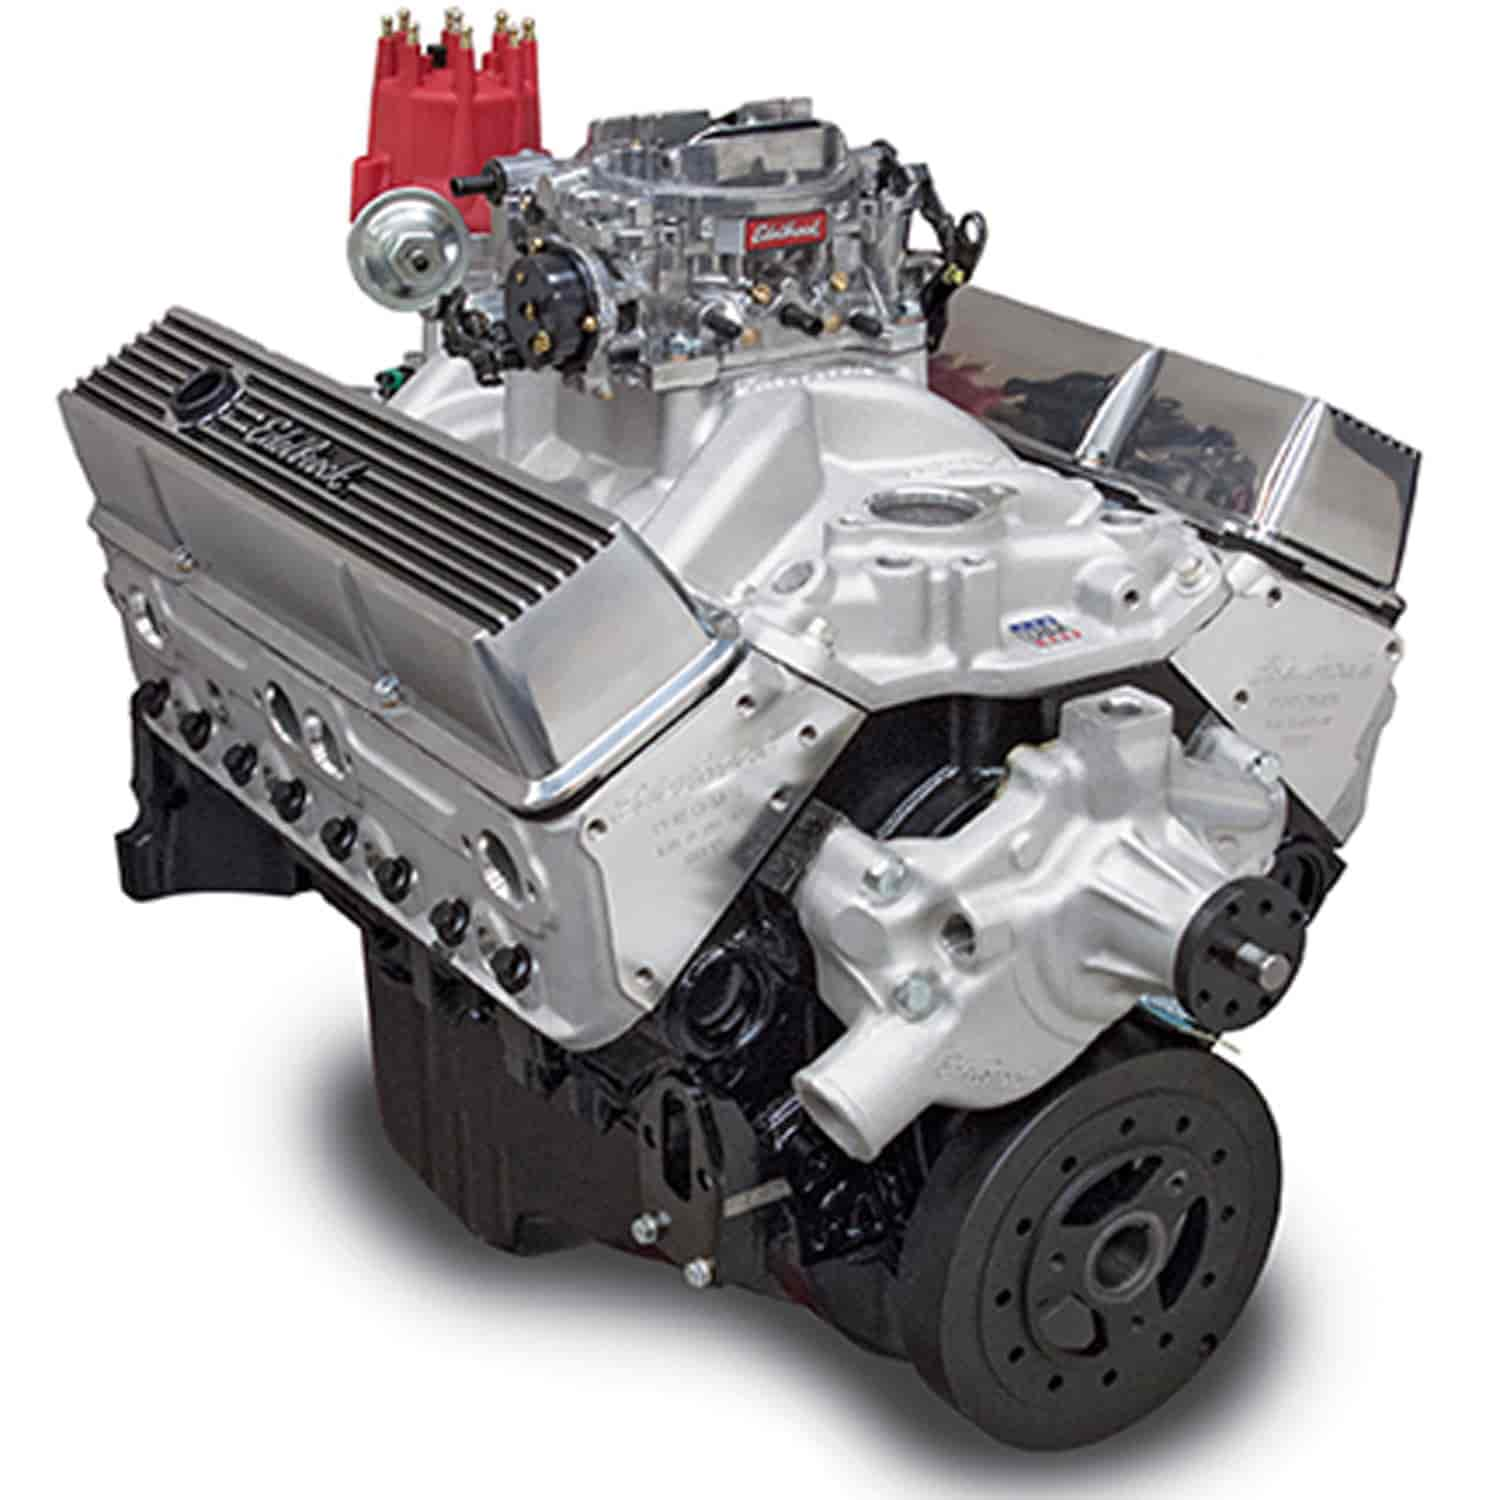 Edelbrock 45110 - Edelbrock Performer 350ci /310HP Engines